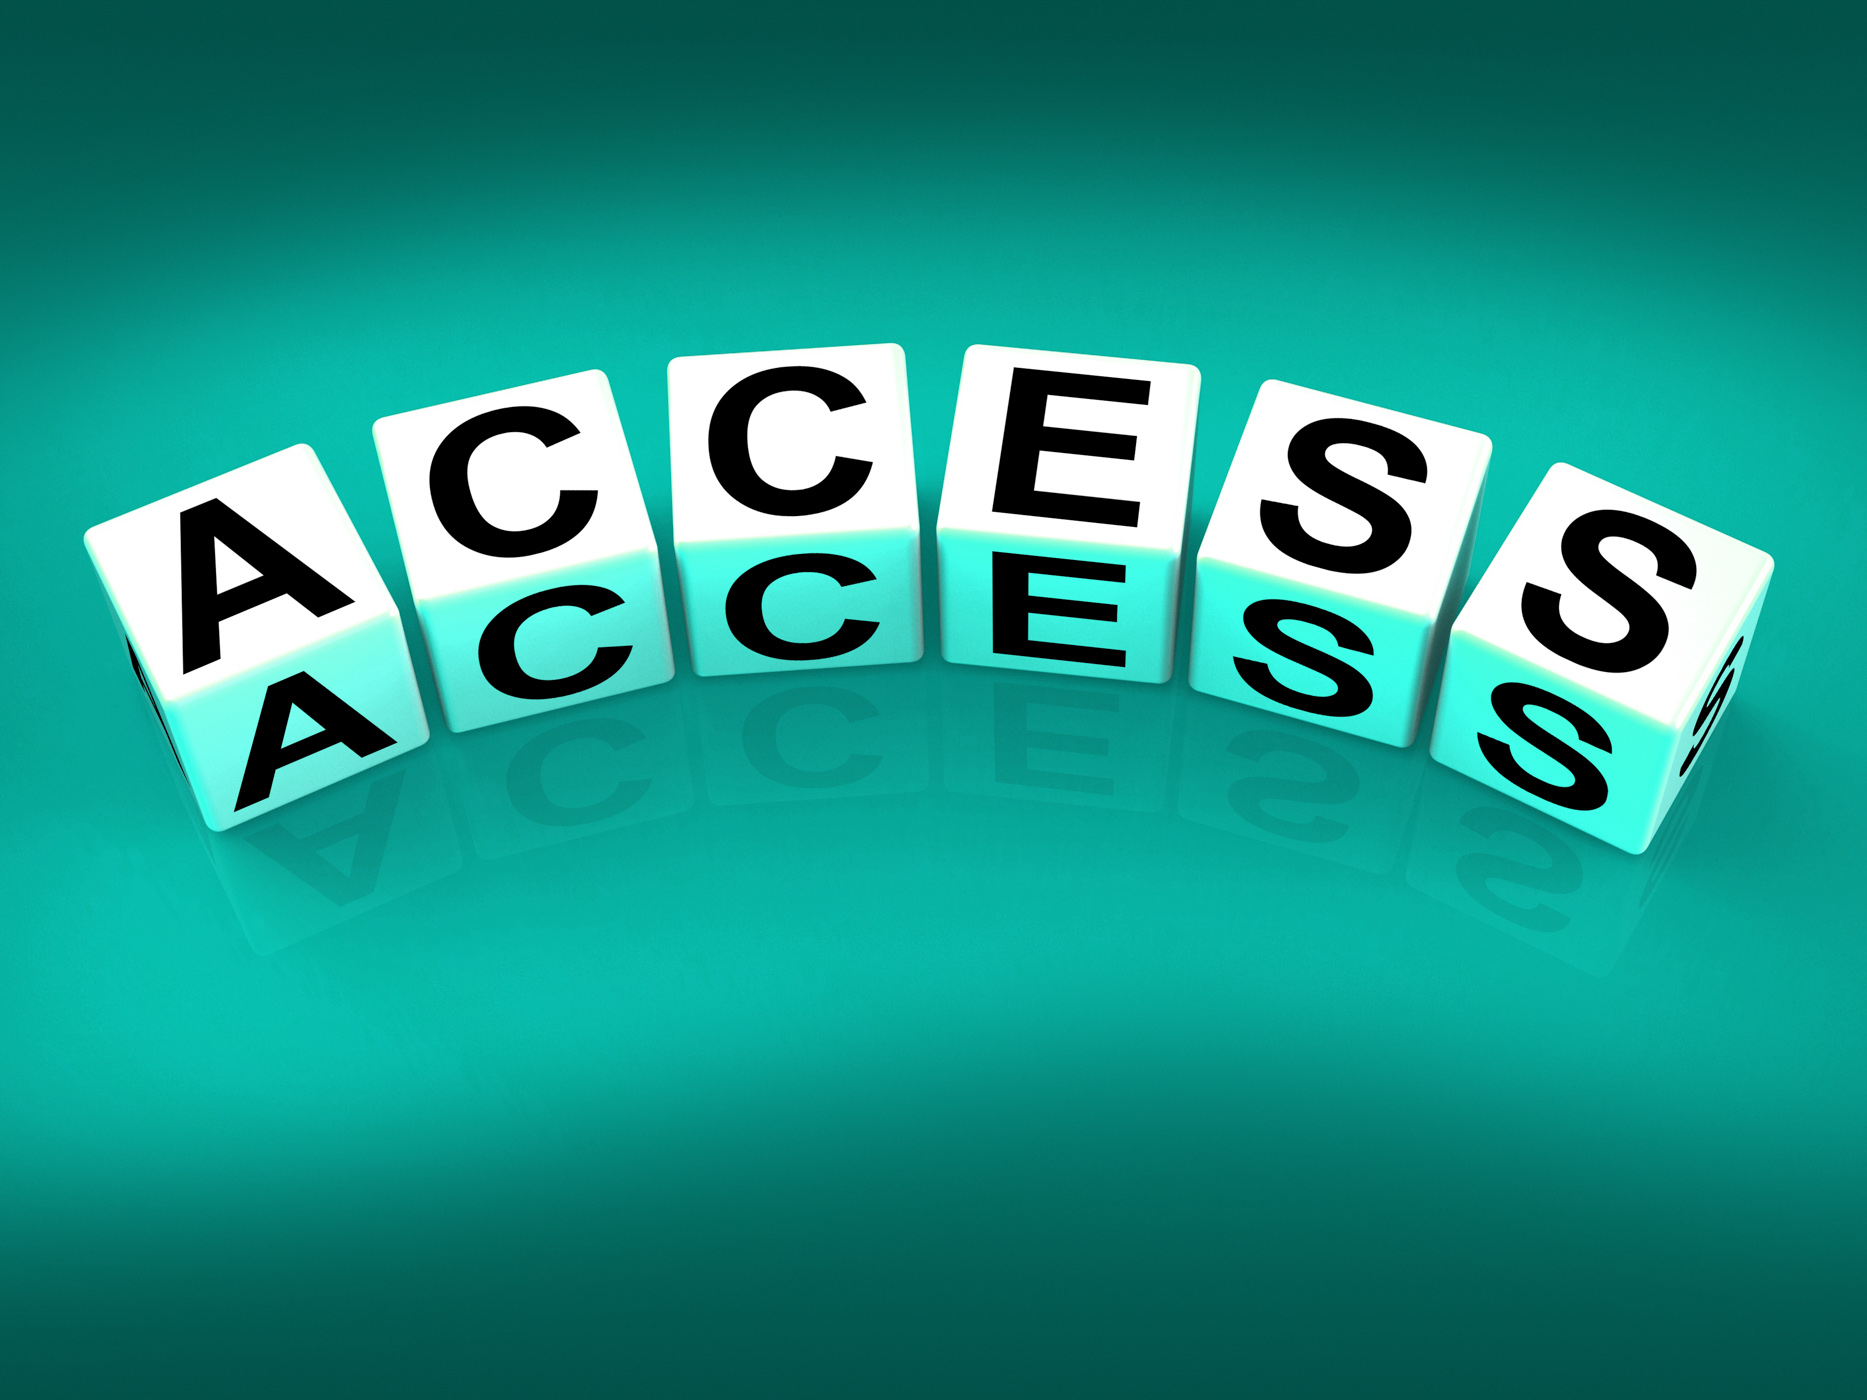 Access Blocks Show Admittance Accessibility and Entry, Access, Security, Secure, Permission, HQ Photo